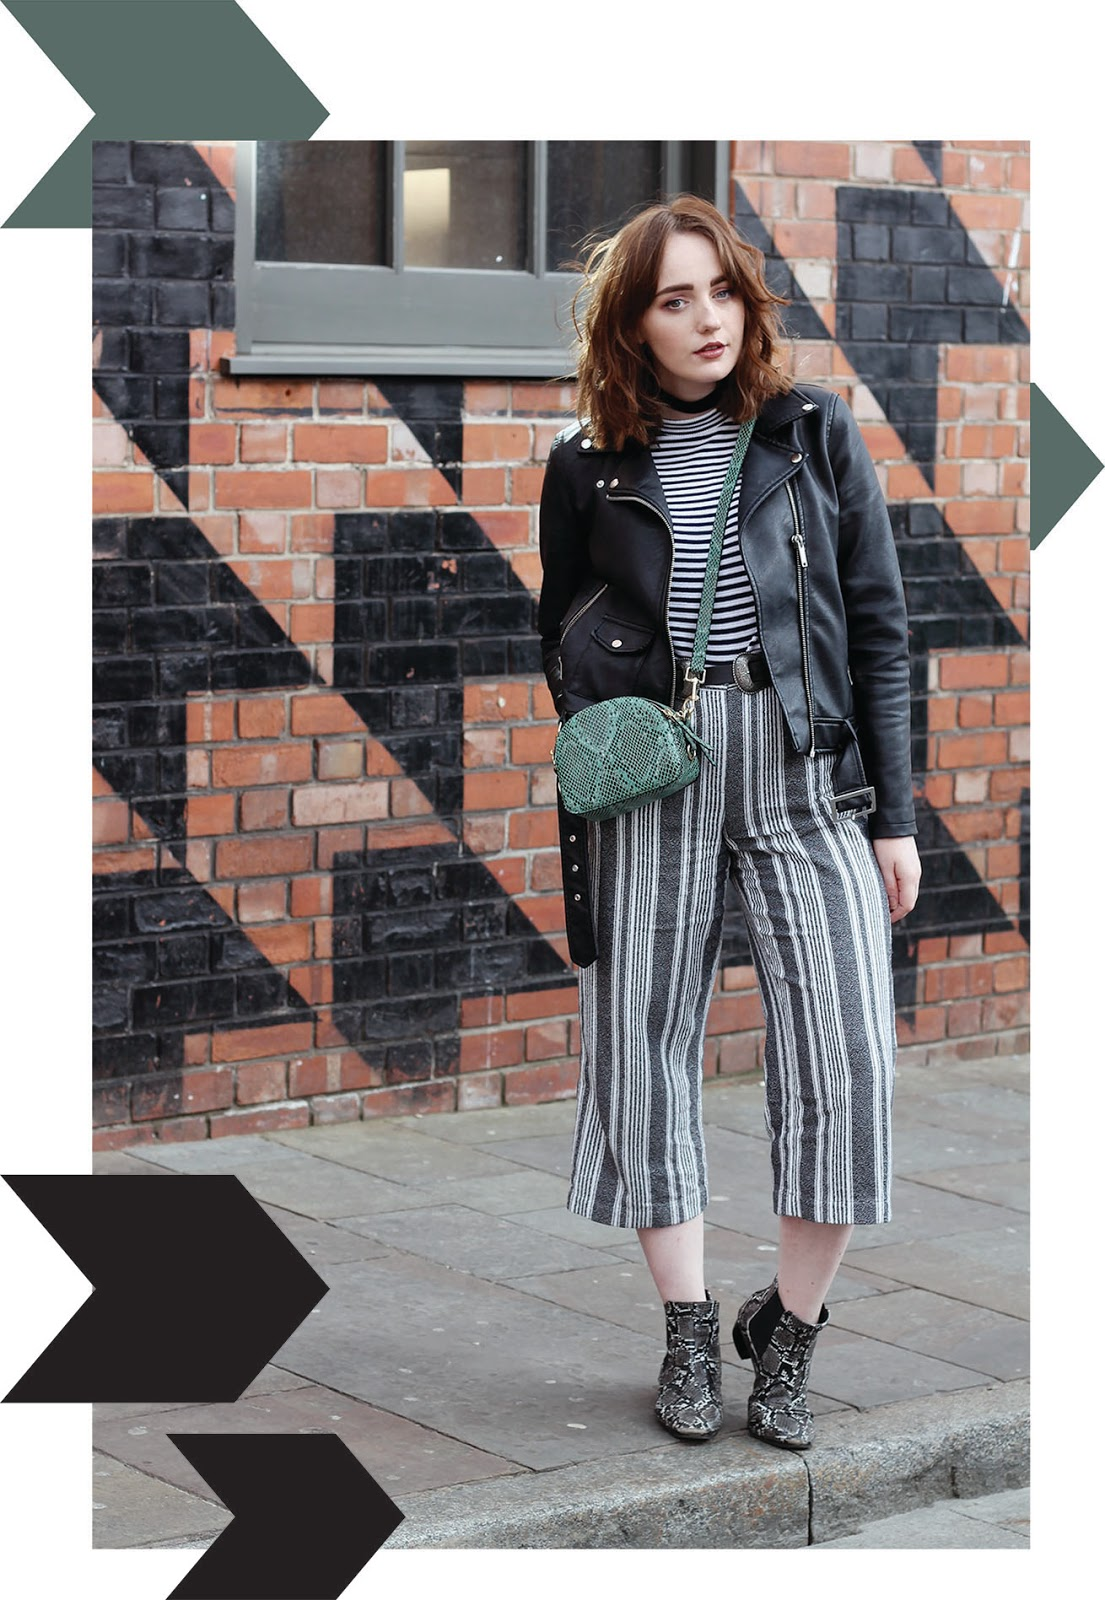 Liverpool fashion blogger ss17 outfit featuring stripes and snake print trend